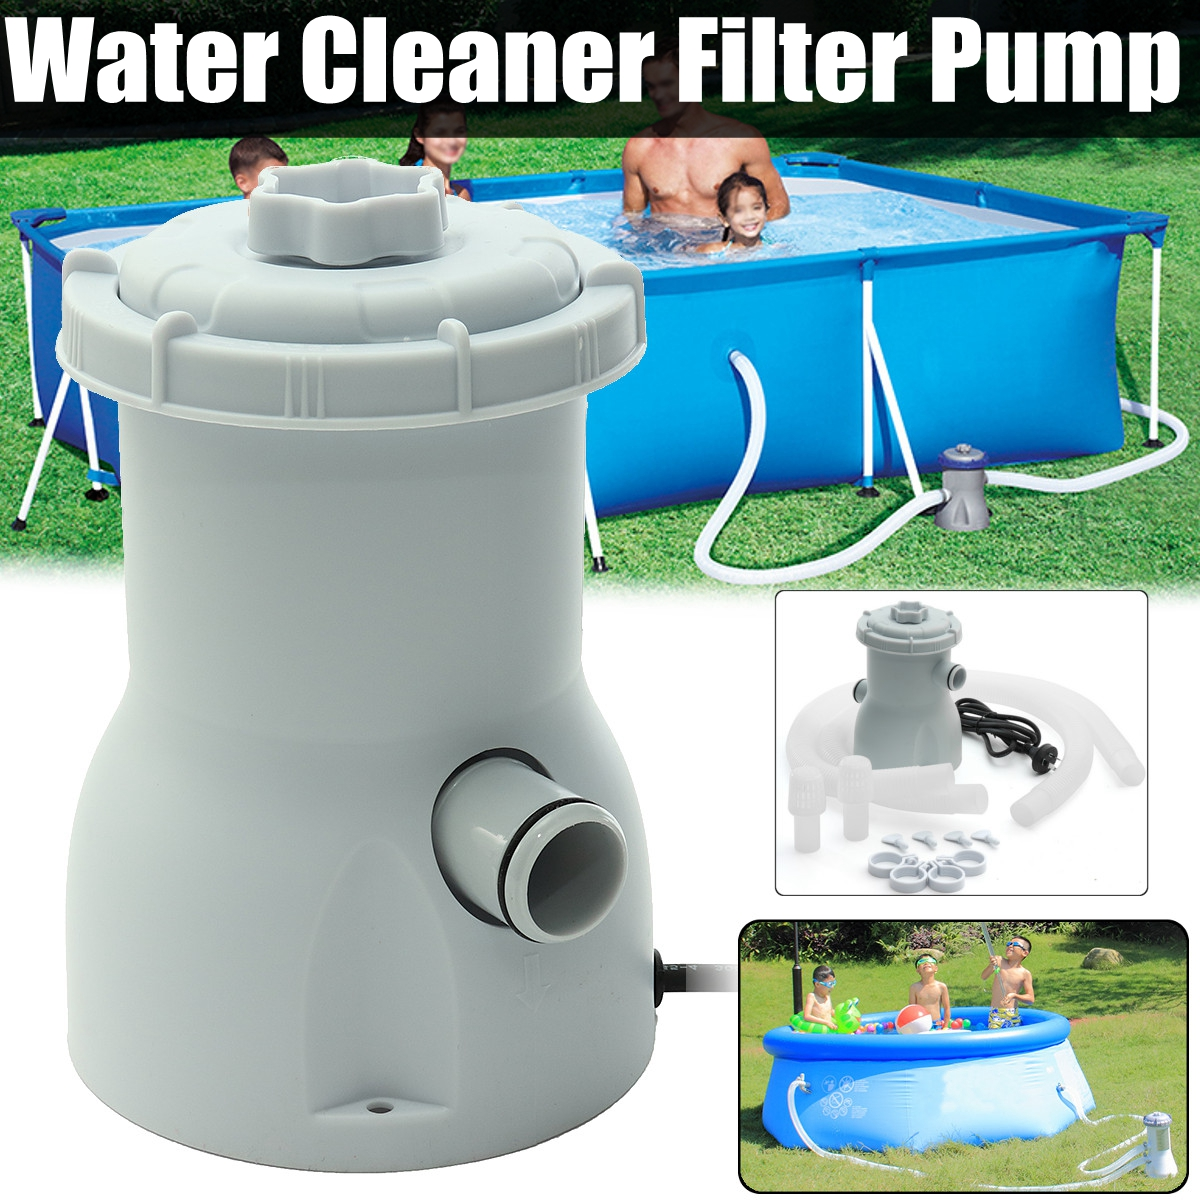 220V Electric Filter Pump Swimming Pool Filter Pump Water Clean Clear Dirty Pool Pond Pumps Filter/swimming Pool Water Cleaner ...